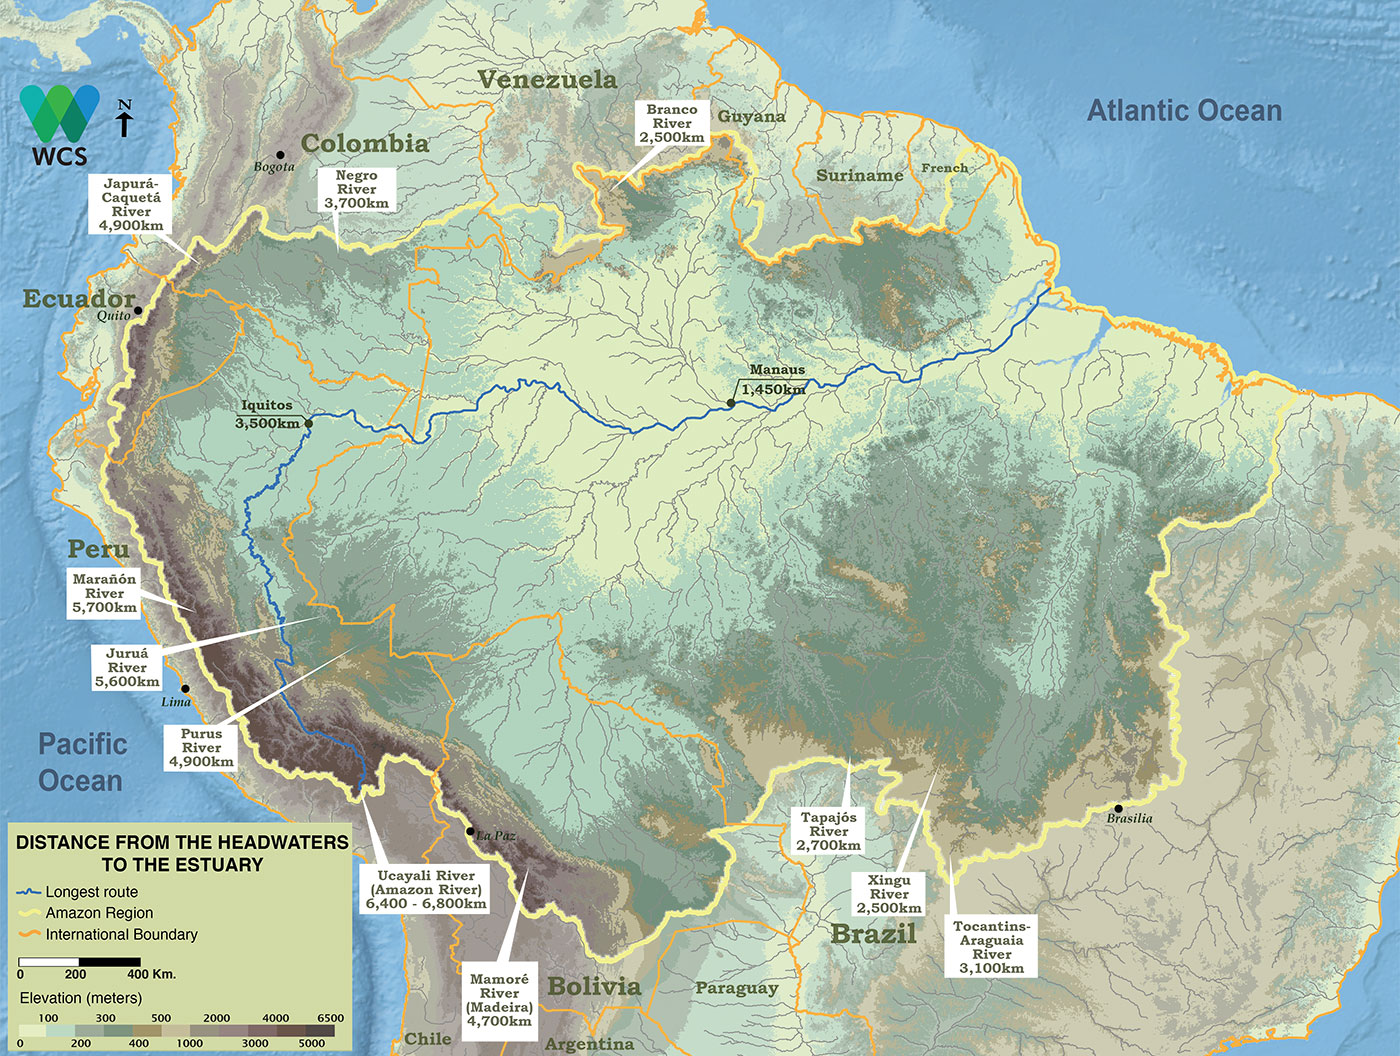 The Amazon River's farthest headwaters are nearly 6,800 km from the Atlantic by way of the tributaries and main stem.